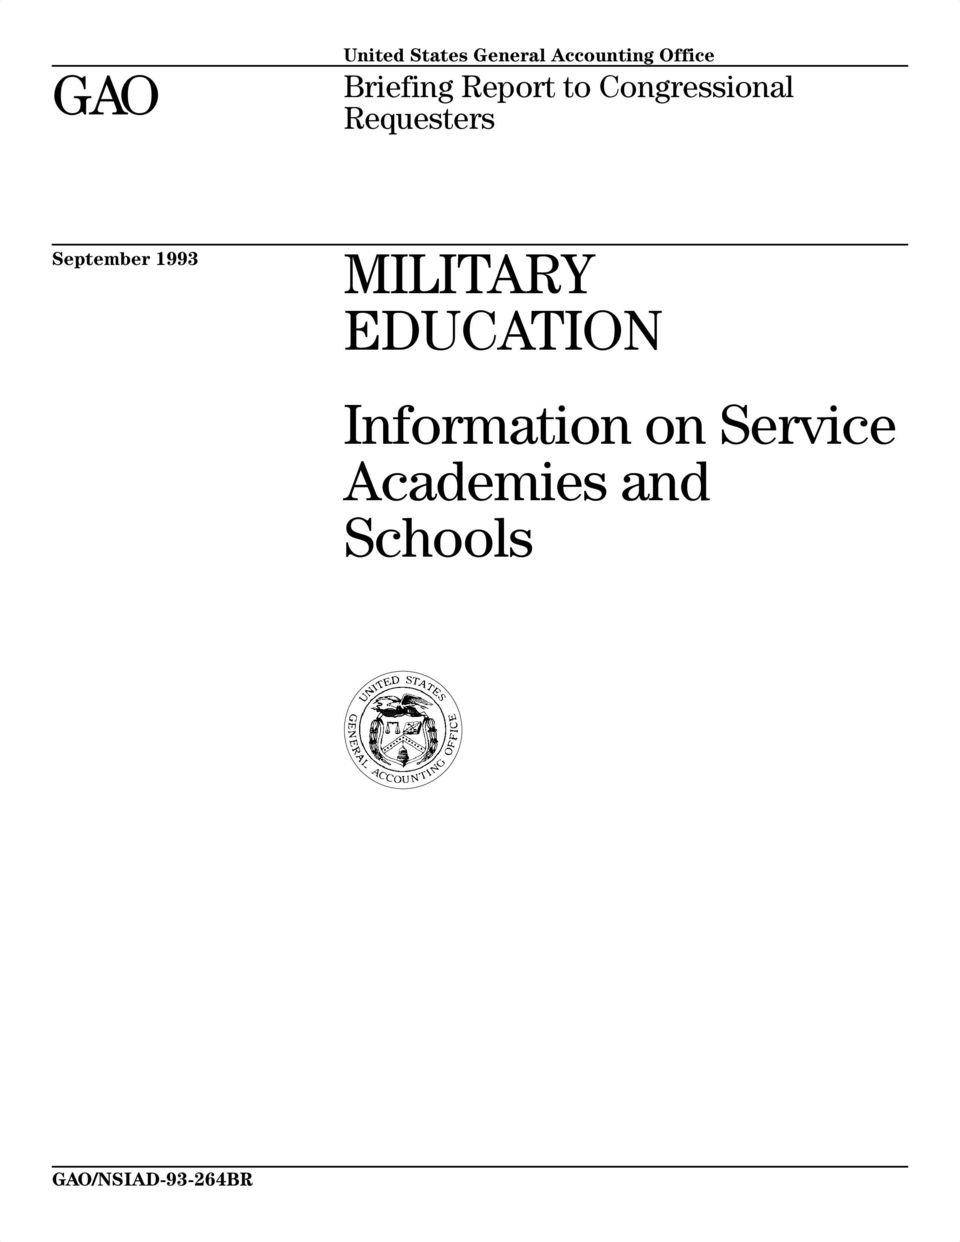 September 1993 MILITARY EDUCATION Information